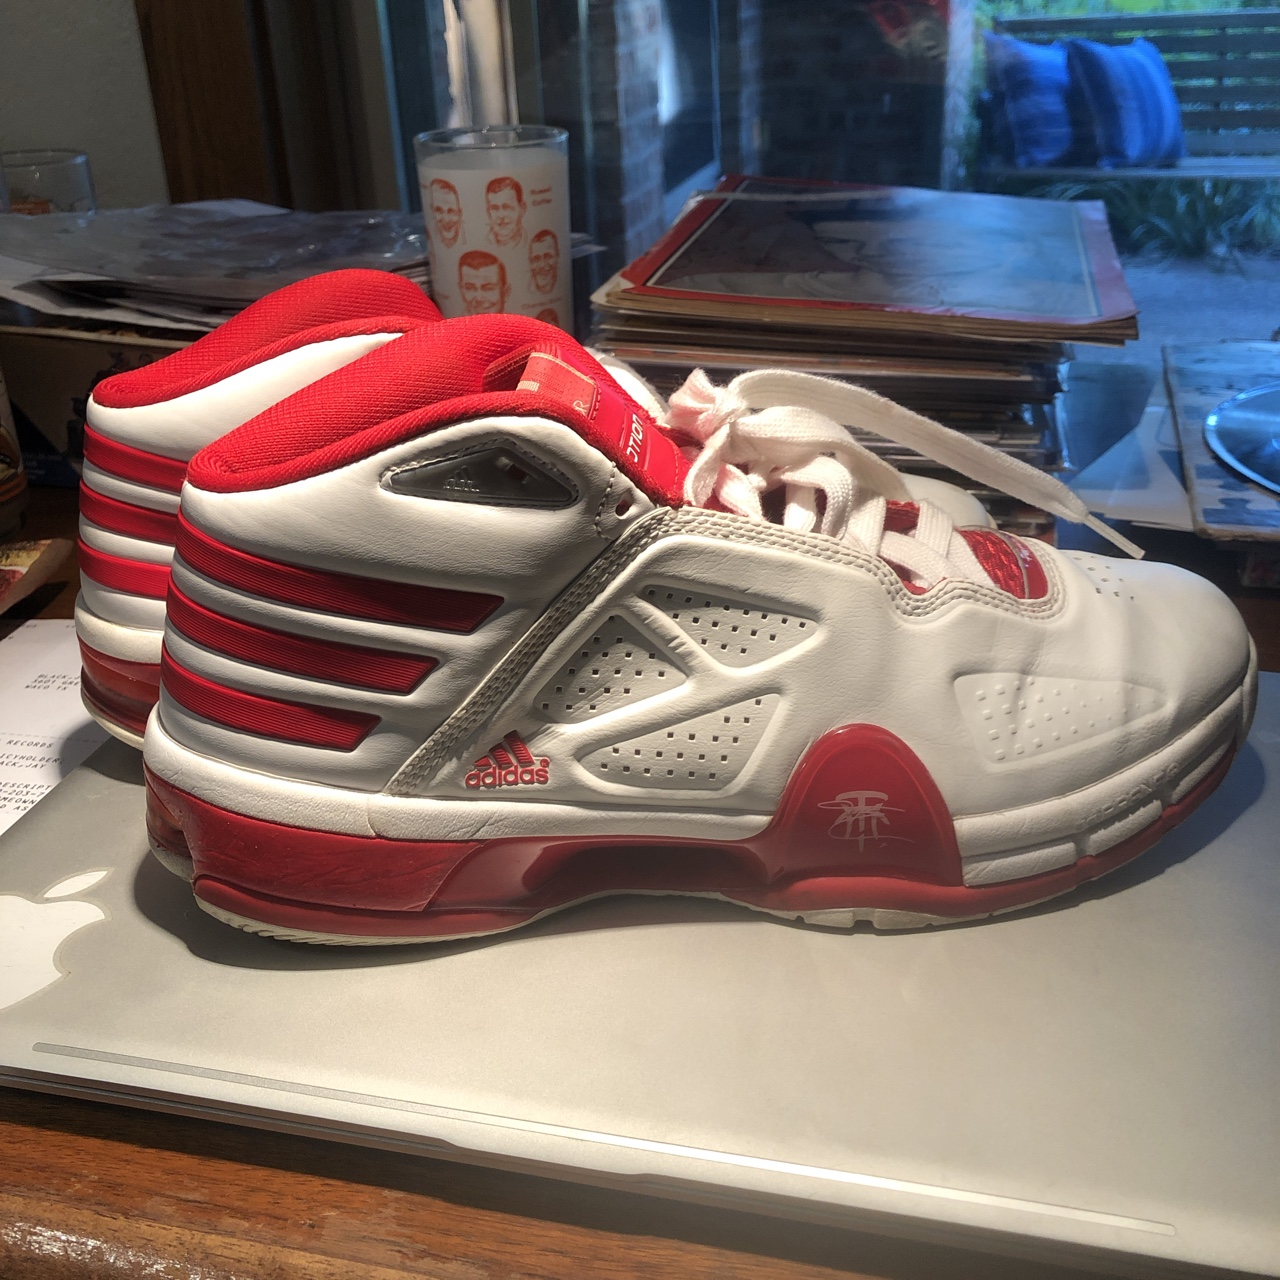 Adidas Houston Creator Formotion Tracy Depop McGrady 4A3RL5j